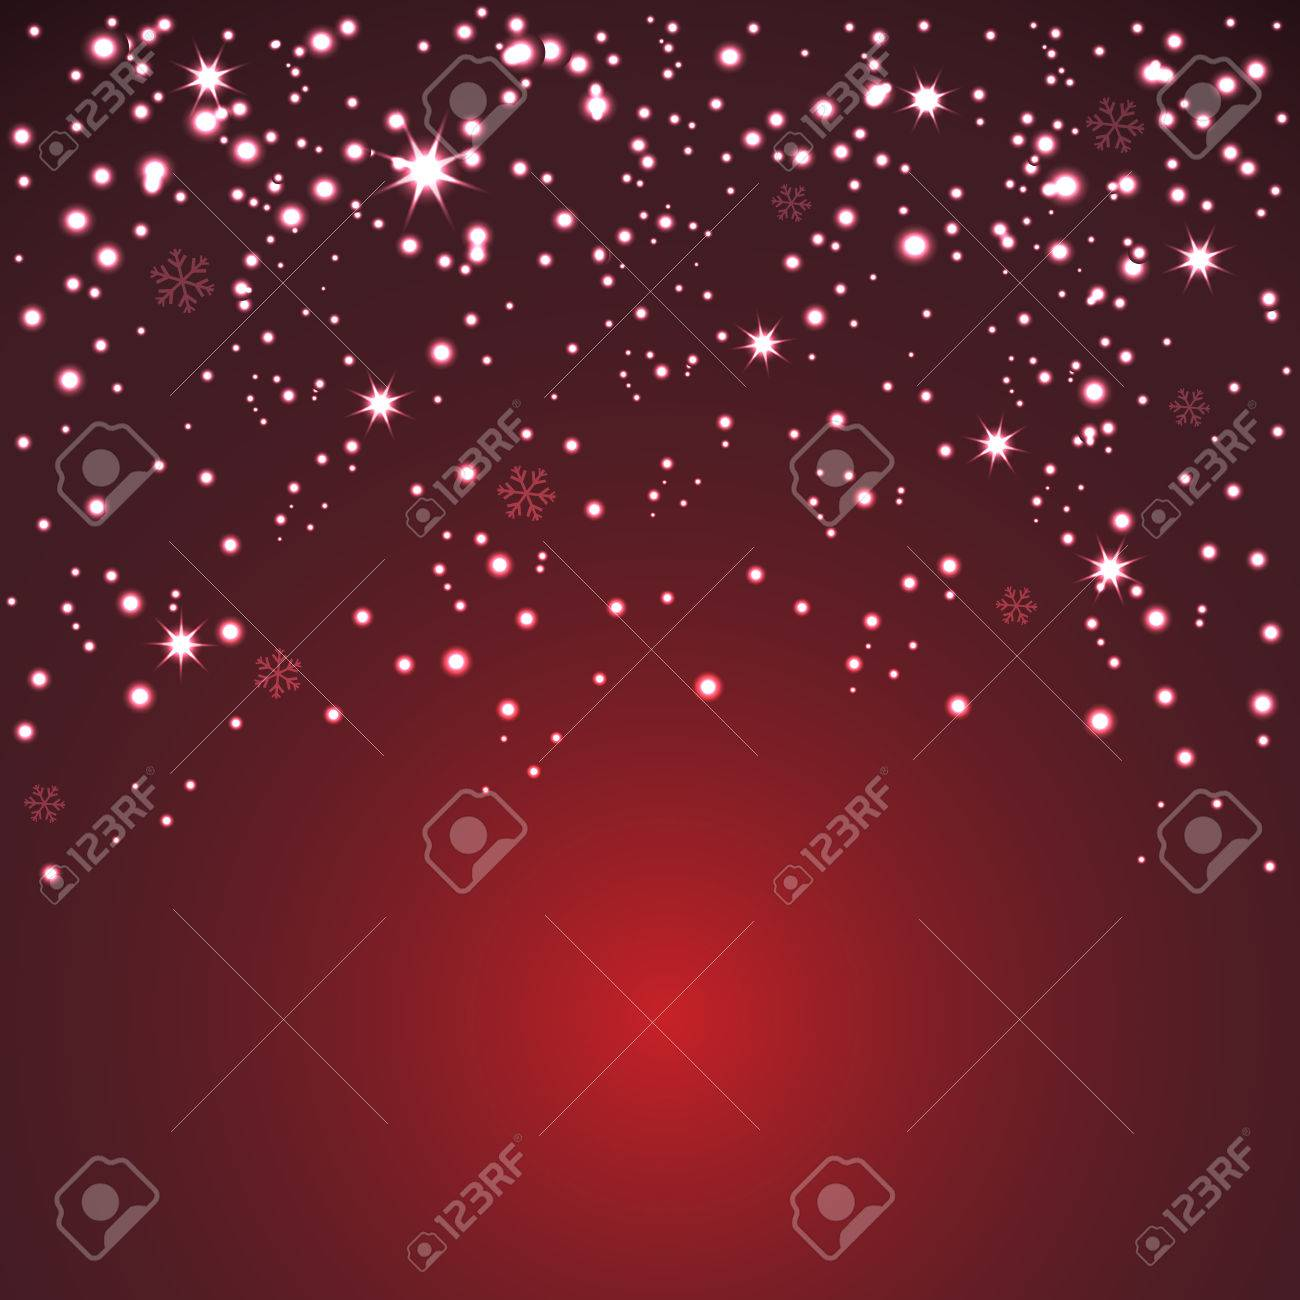 glitter particles background effect for greeting card celebration banner for christmas and new year